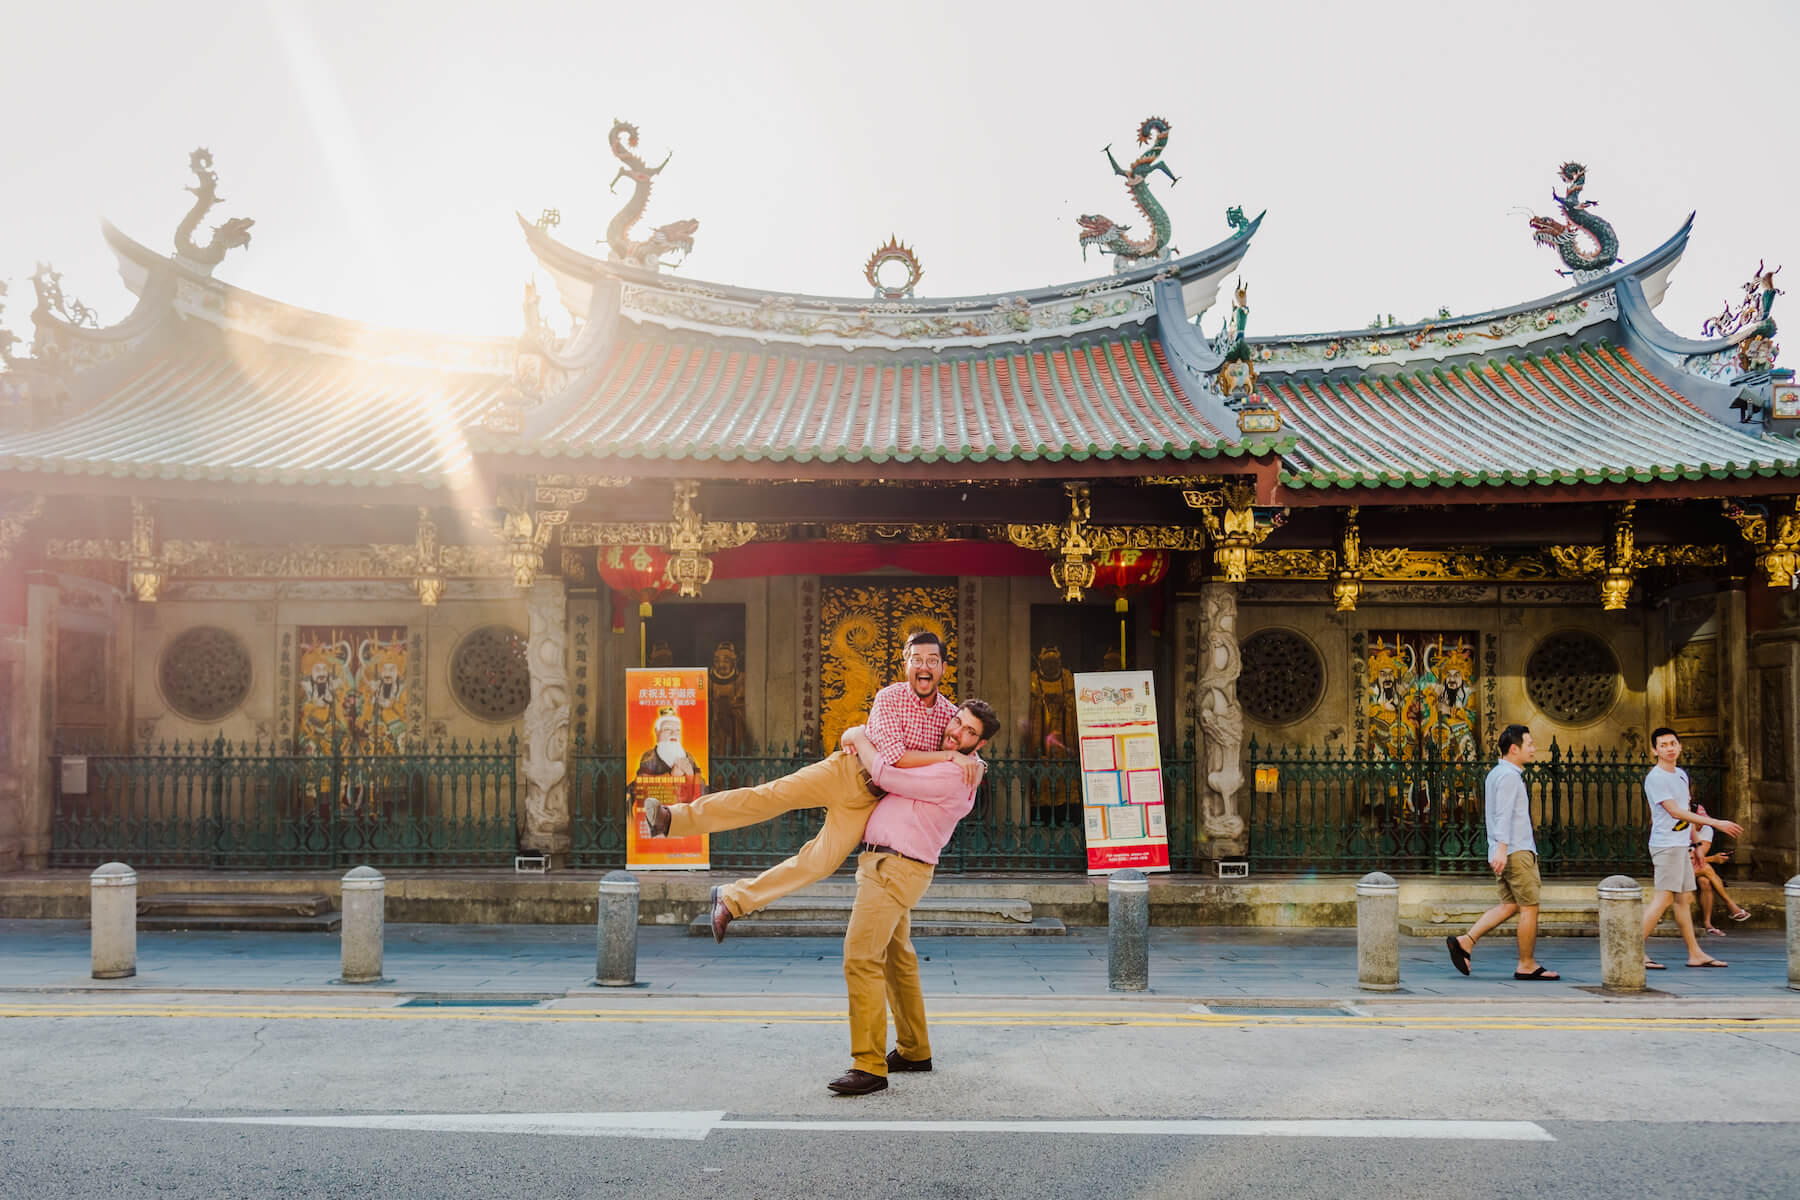 couple in front of a temple, one person is lifting the other person and both are laughing in Singapore, Singapore